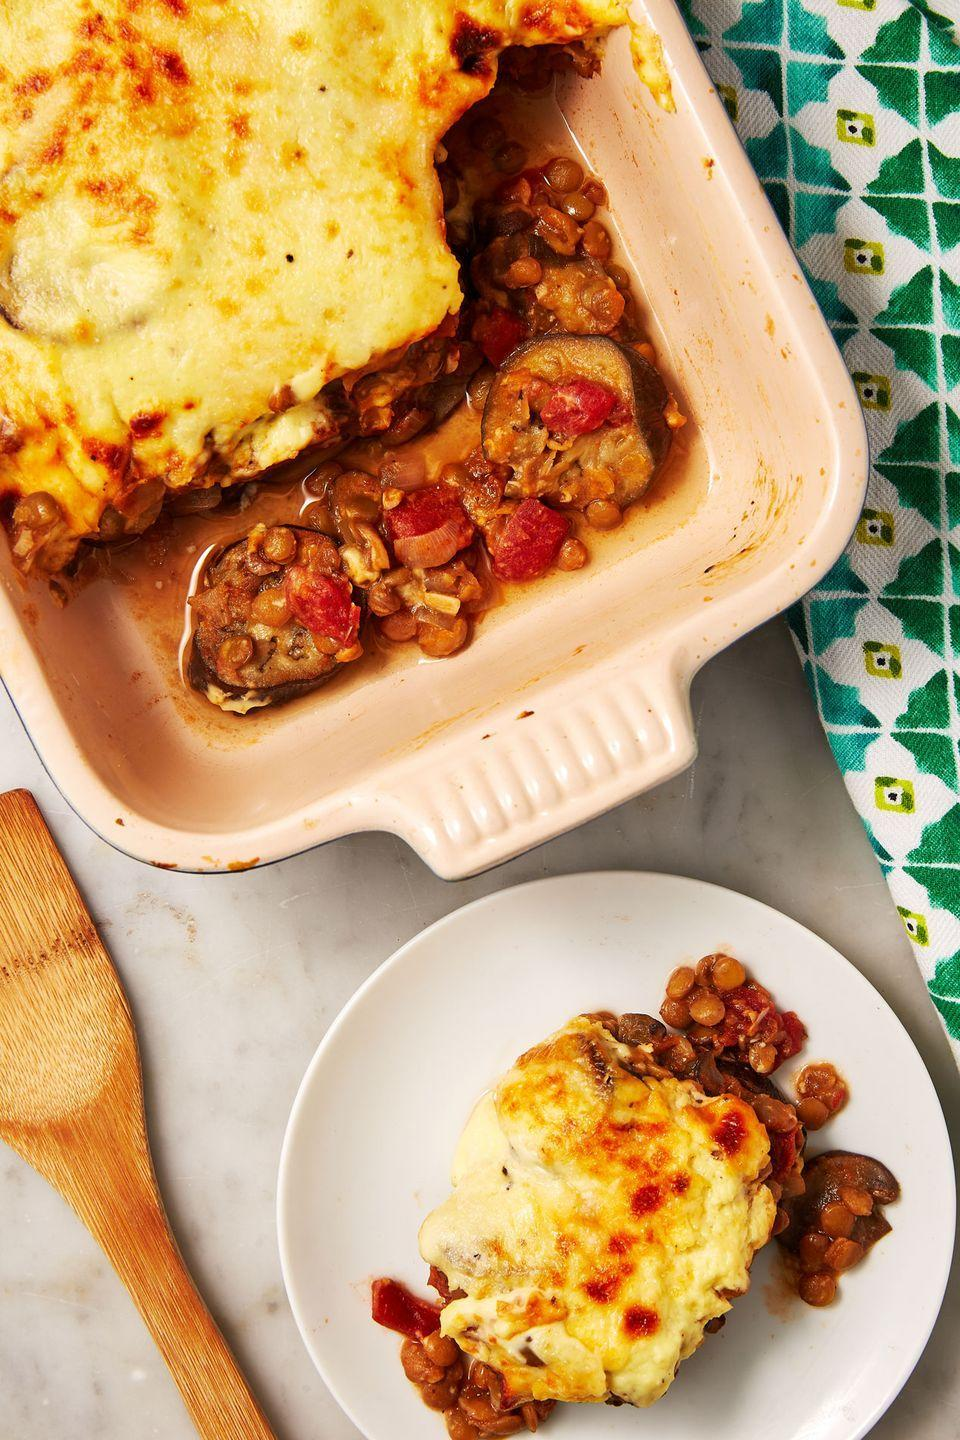 "<p>How amazing does this look?</p><p>Get the recipe from <a href=""https://www.delish.com/cooking/recipe-ideas/a30876085/vegetarian-moussaka-recipe/"" rel=""nofollow noopener"" target=""_blank"" data-ylk=""slk:Delish."" class=""link rapid-noclick-resp"">Delish.</a></p>"